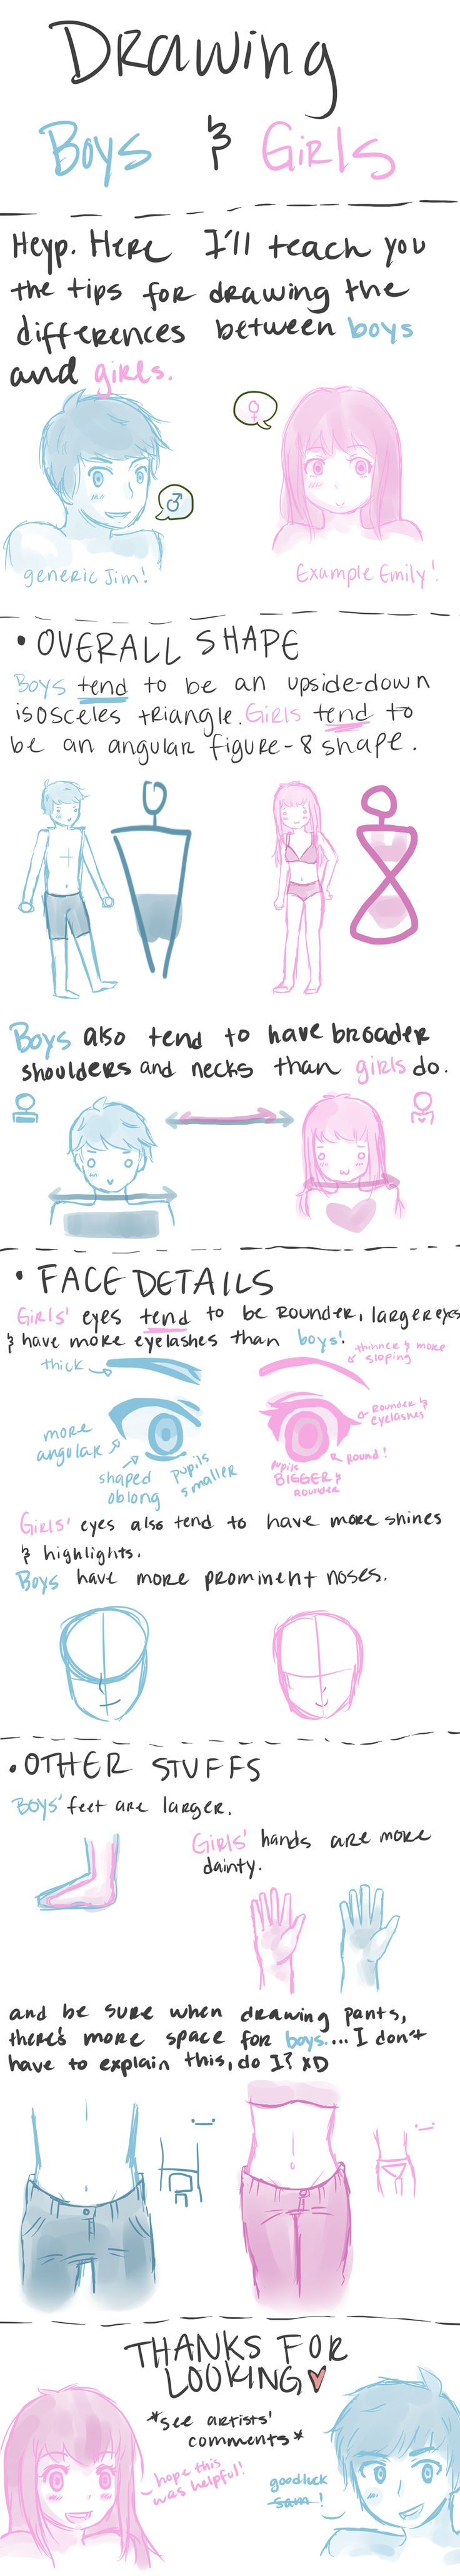 Boy and Girl Drawing Tips by Arcky-Cano.deviantart.com on @DeviantArt